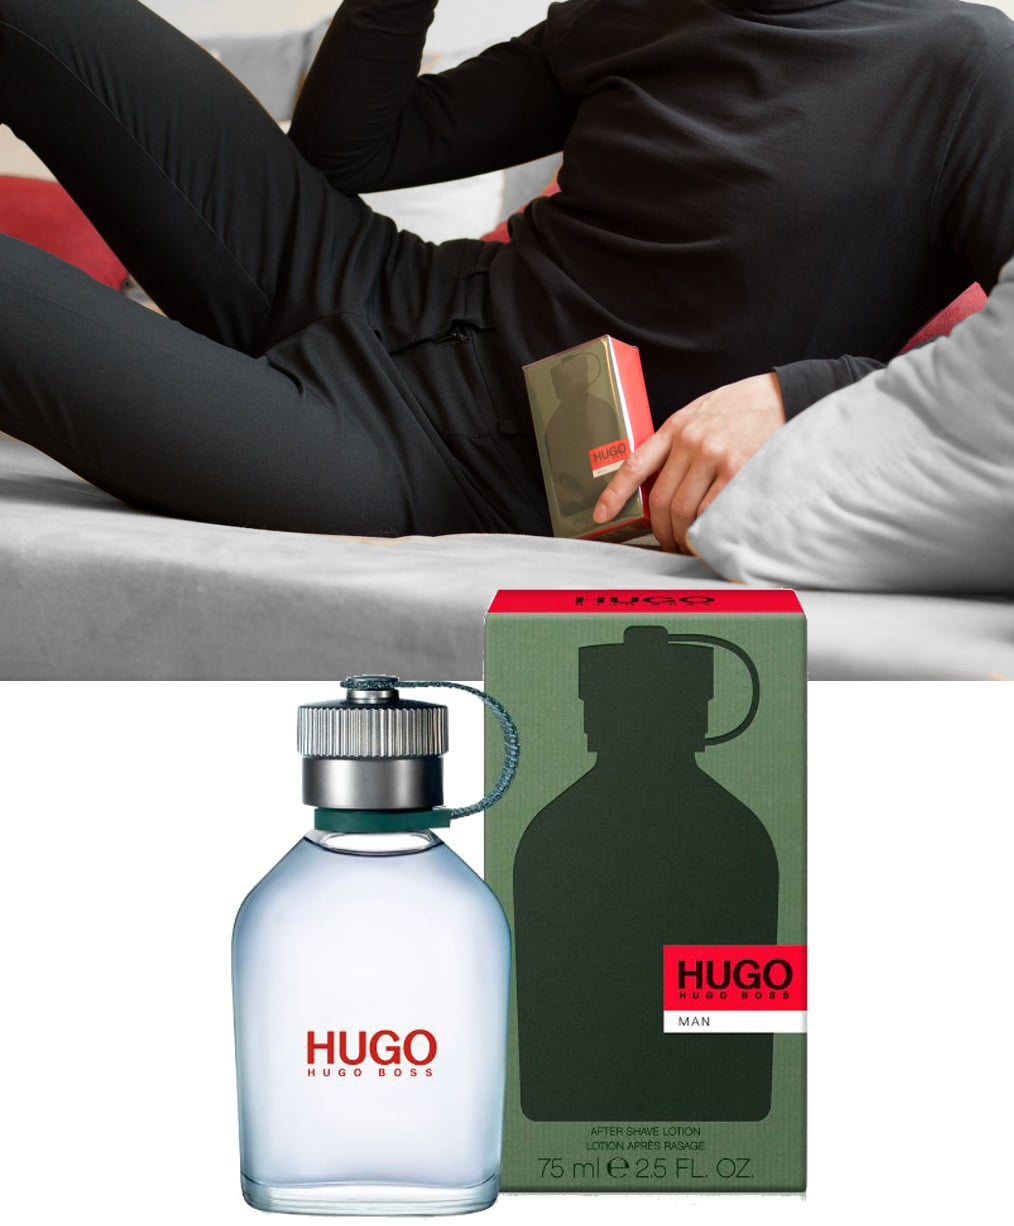 gewinnspiel f r den 2 advent das hugo boss man parfum gewinnen. Black Bedroom Furniture Sets. Home Design Ideas